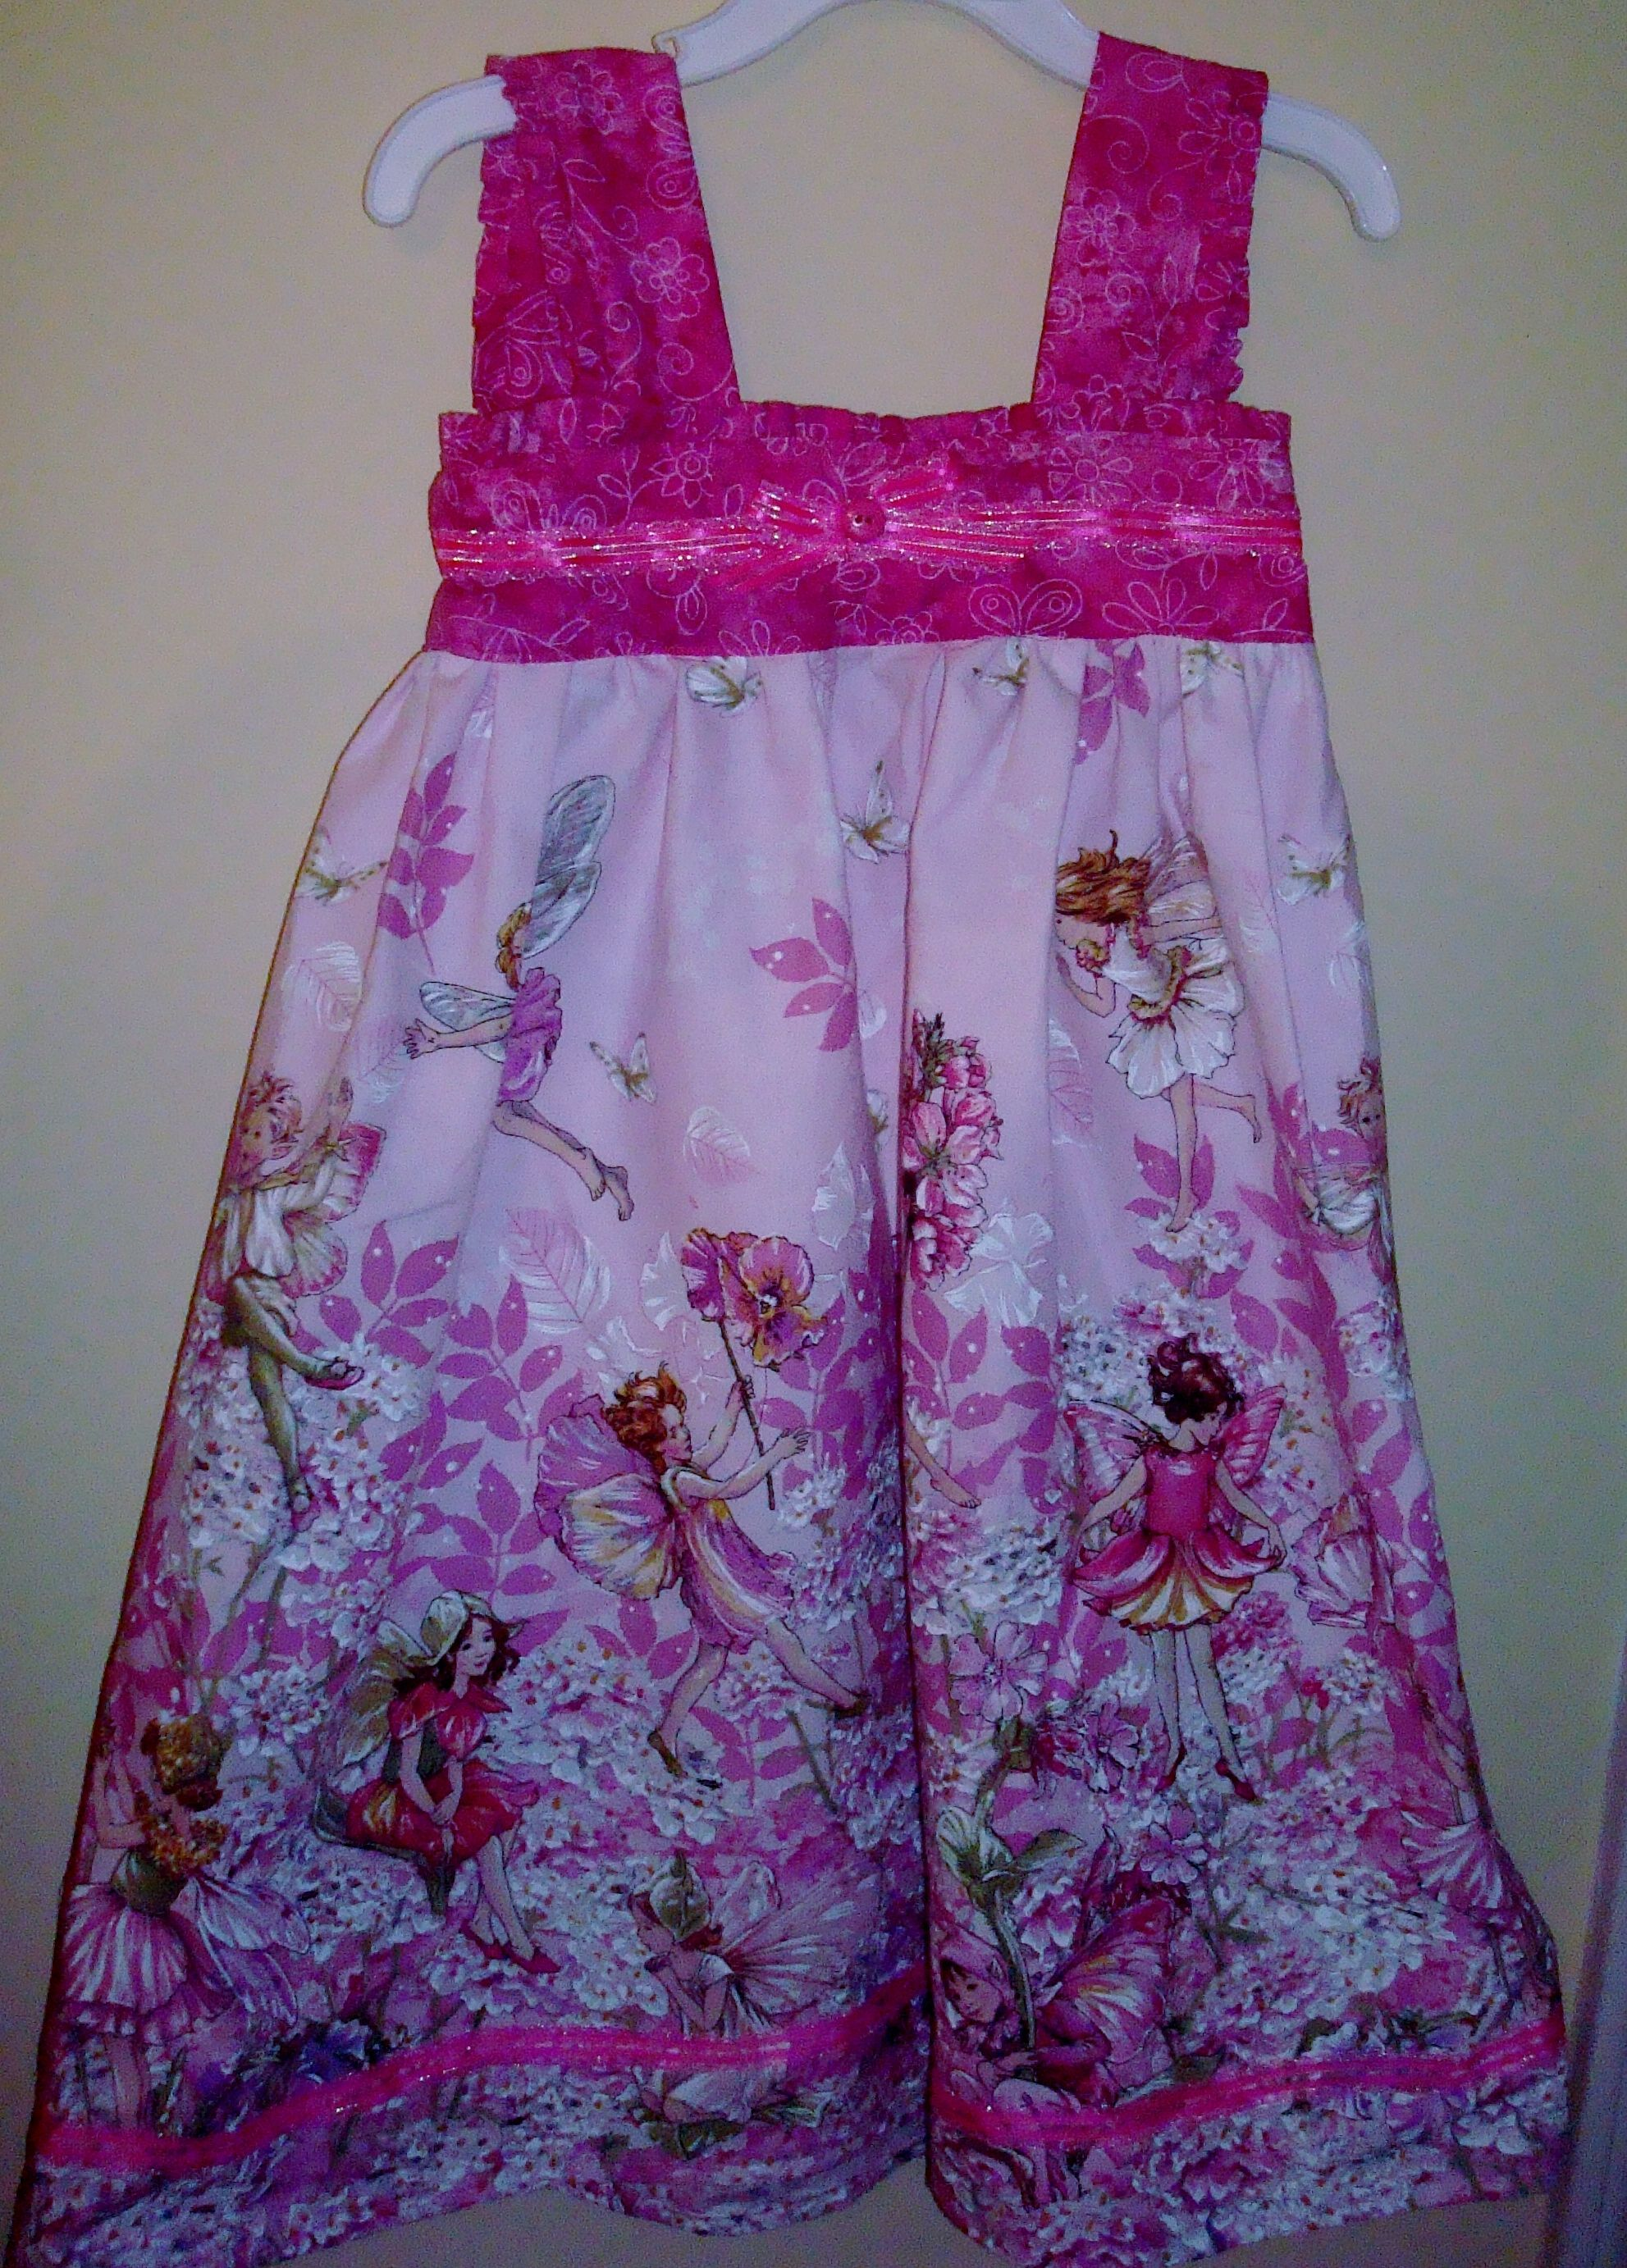 Fairy sundress with ruffled sleeves and chest band - bow off center at my daughter's request :)